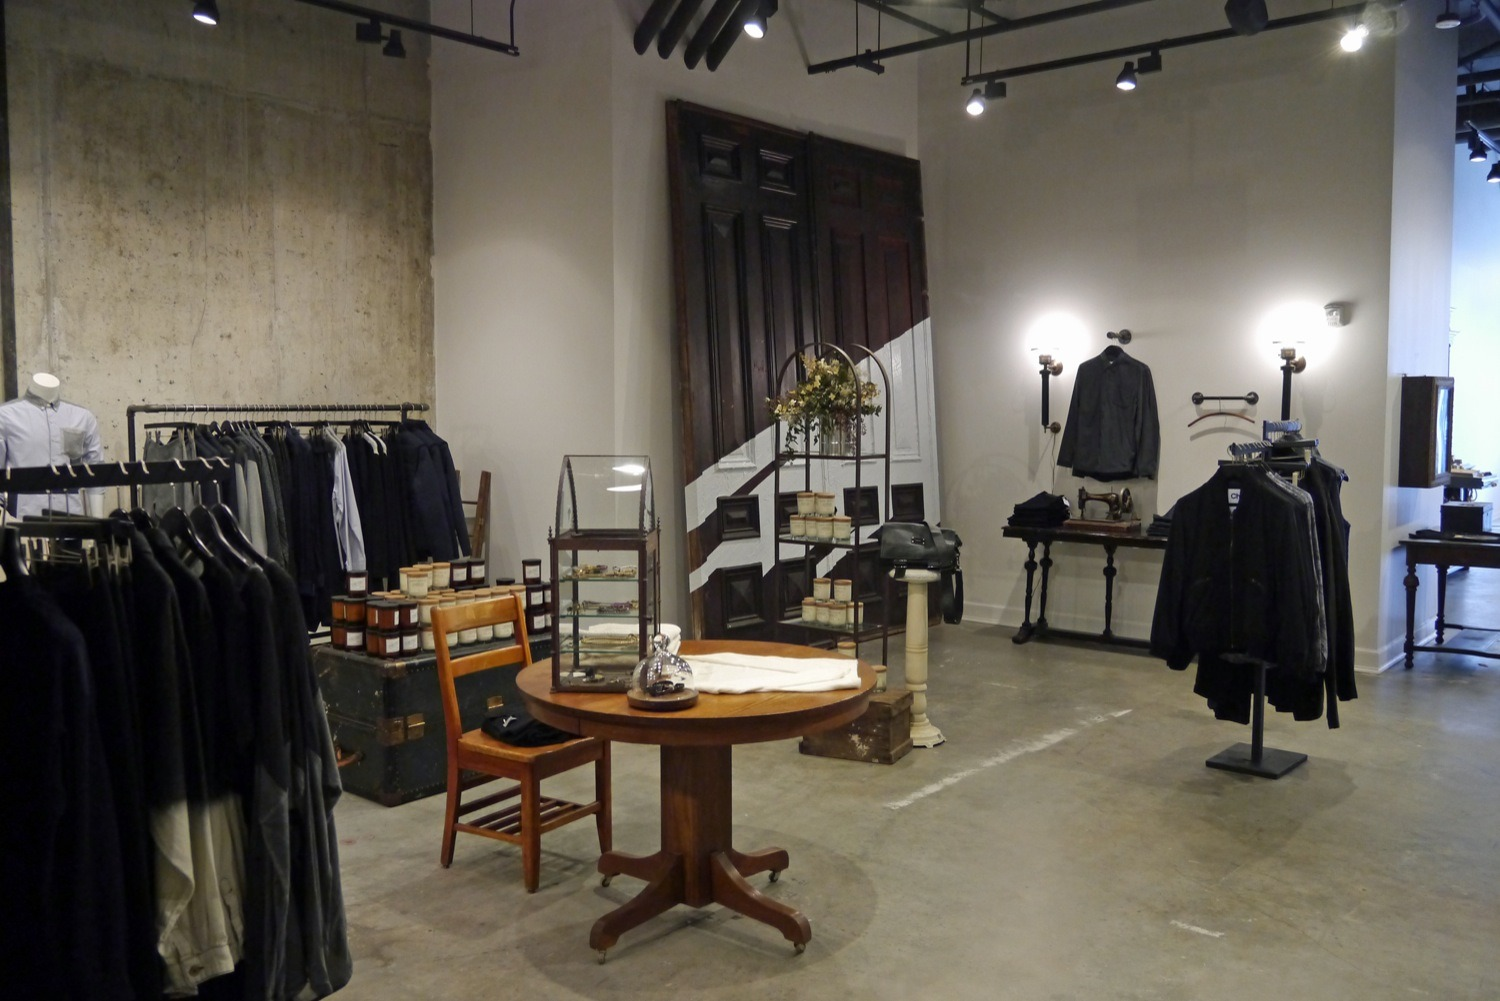 The best shopping in DC